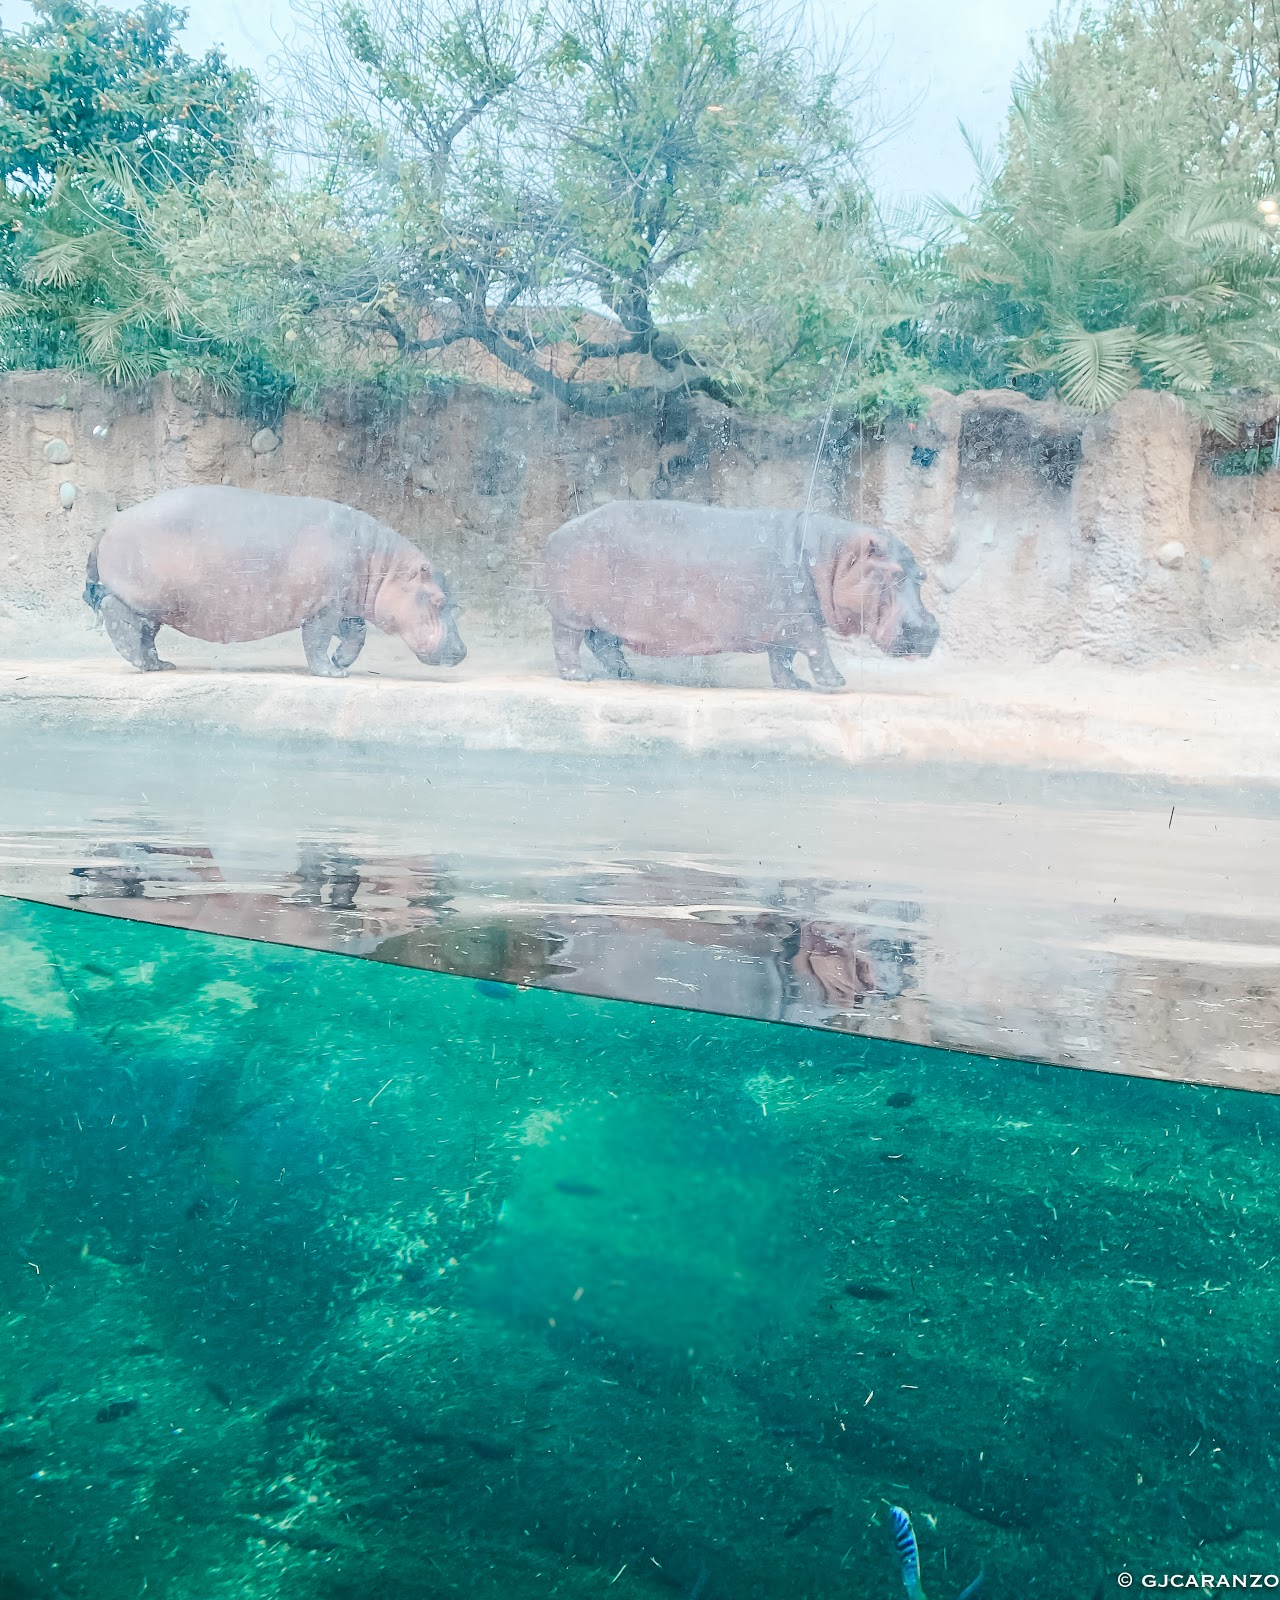 The San Antonio Zoo: Things To Do in Texas, USA